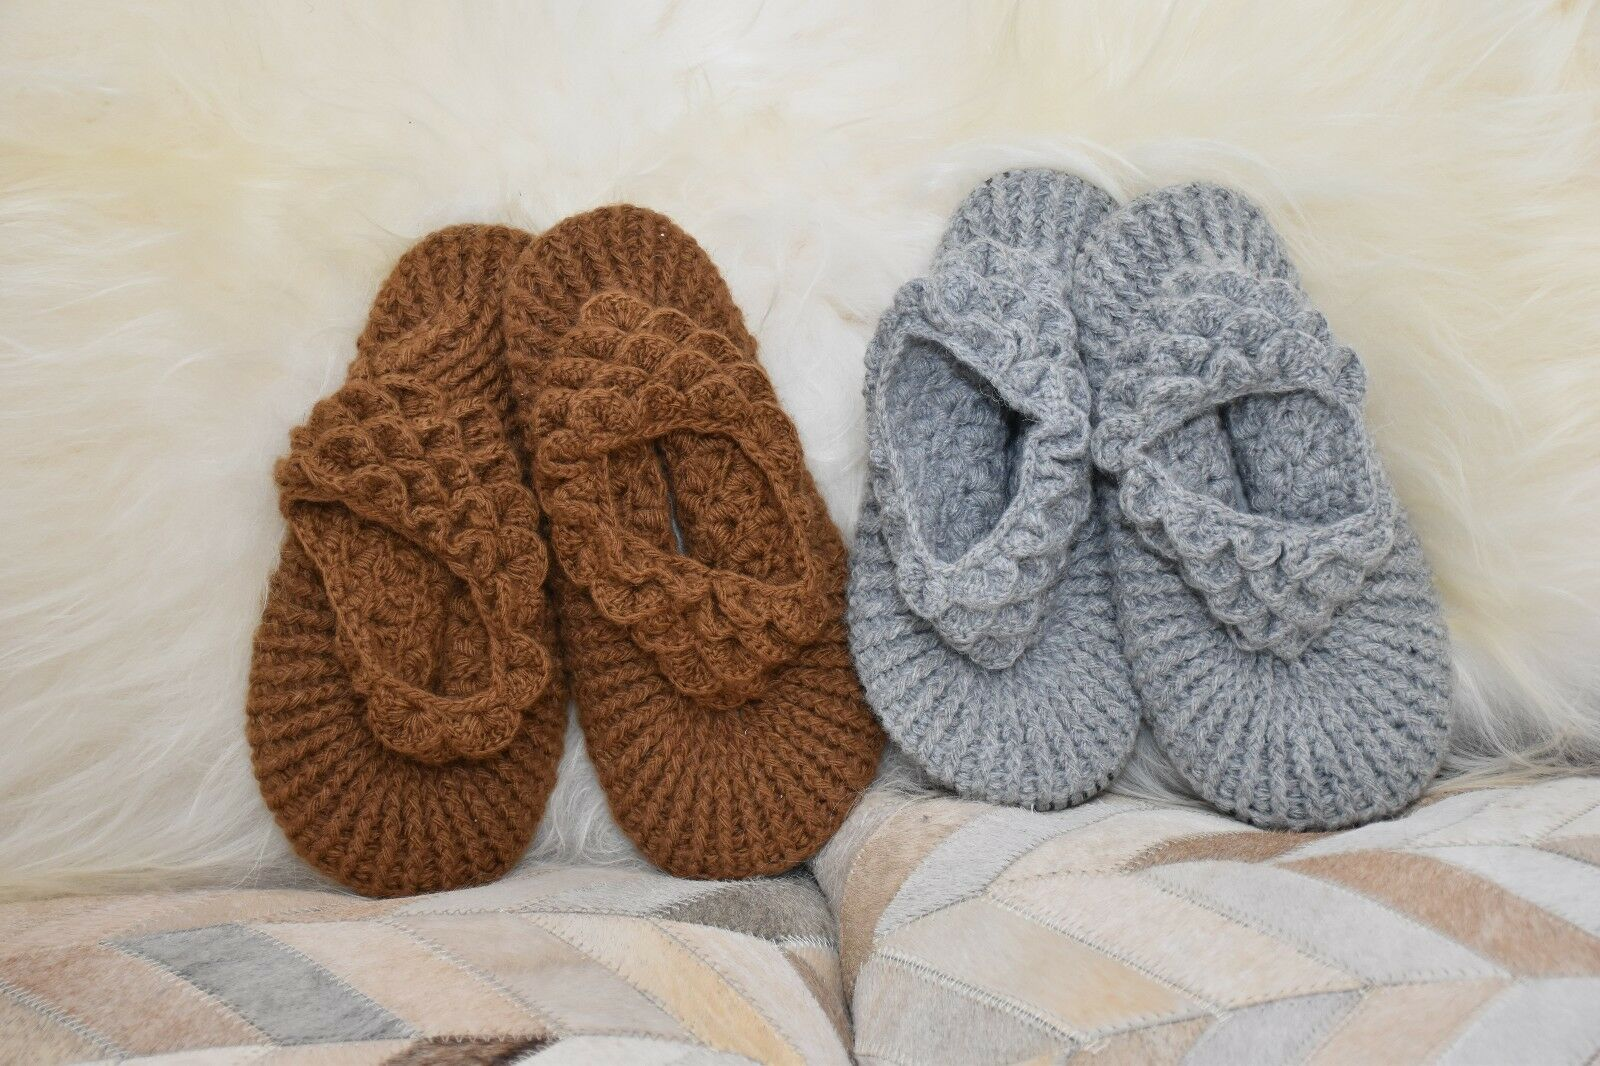 femmes Baby Alpaca Fur Winter Knit Slippers Handcrafted Peru Artisans 7.5